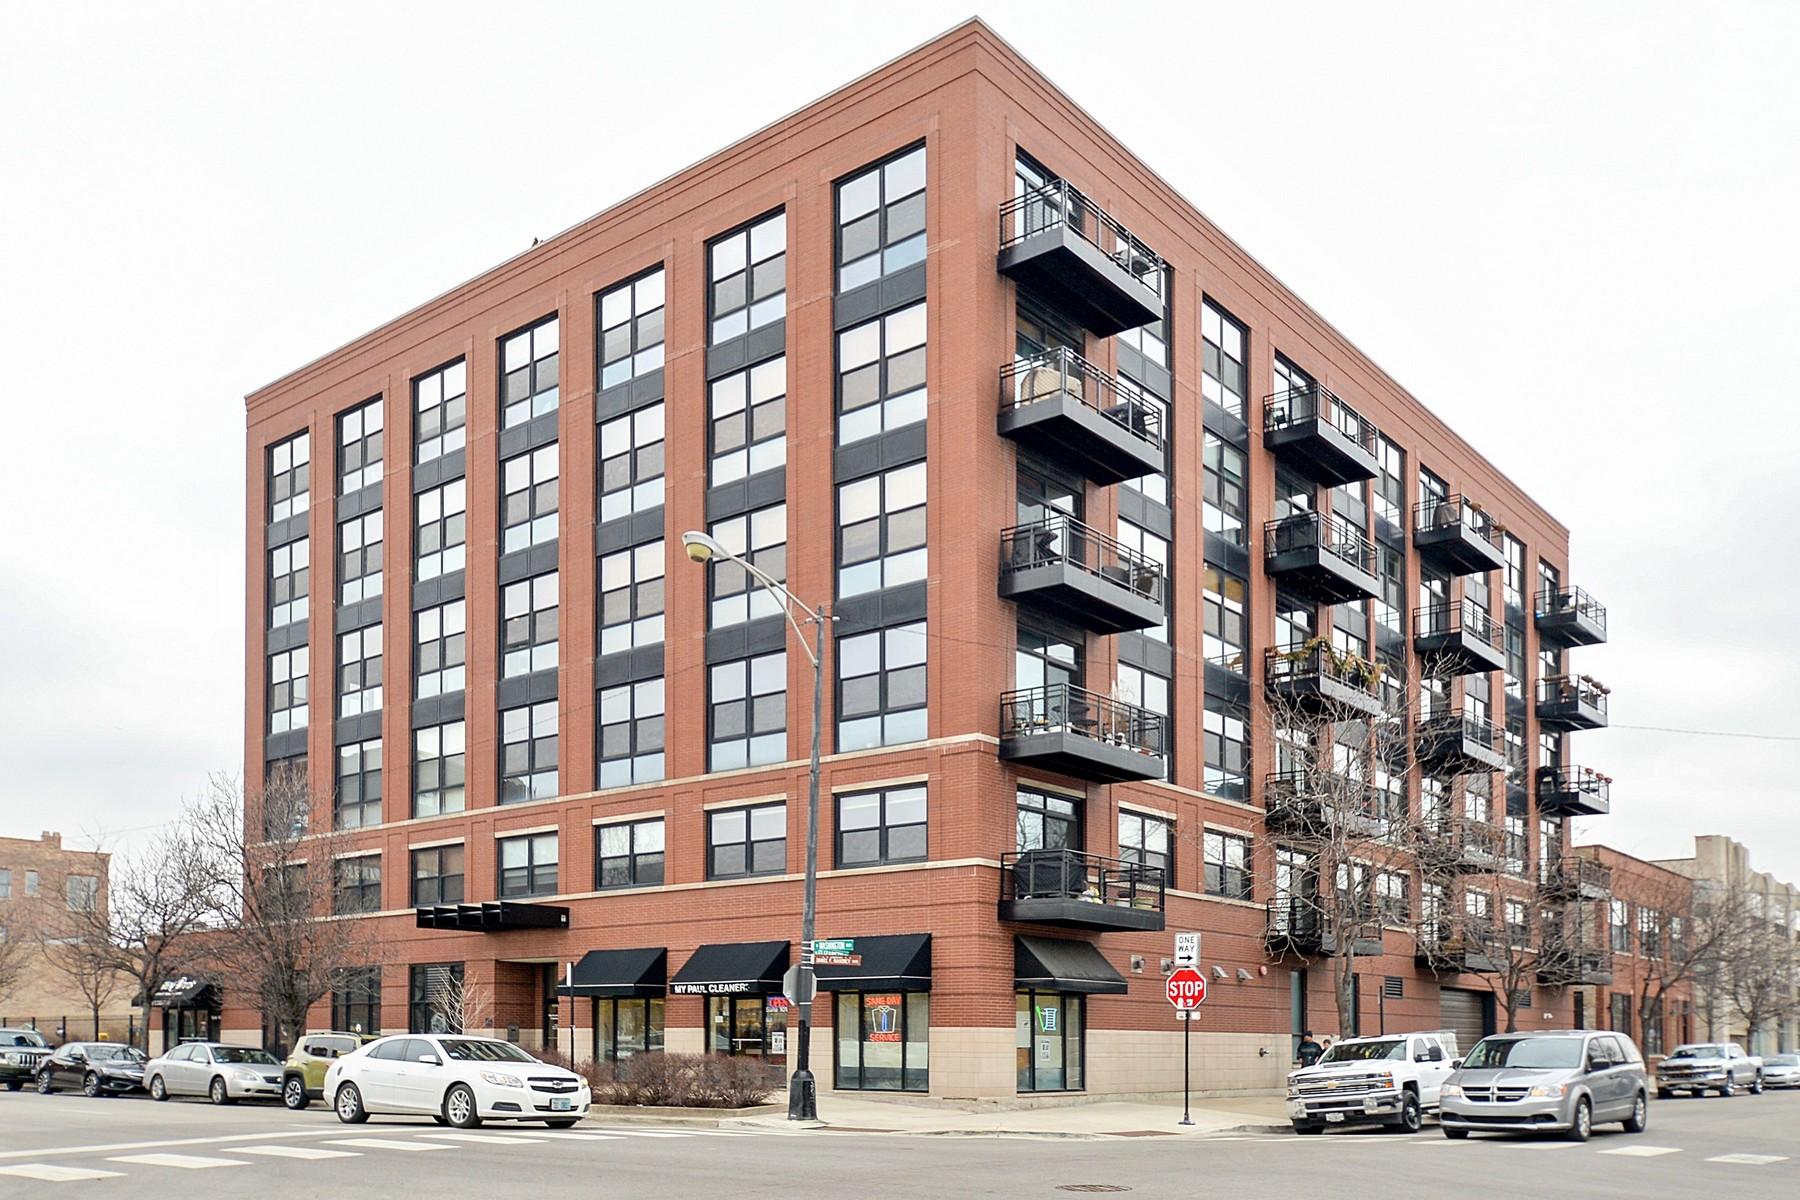 Condominium for Sale at Spacious & Bright 2 Bed/2 Bath in the Heart of West Loop 1260 W Washington Boulevard Unit 301, Near West Side, Chicago, Illinois, 60607 United States